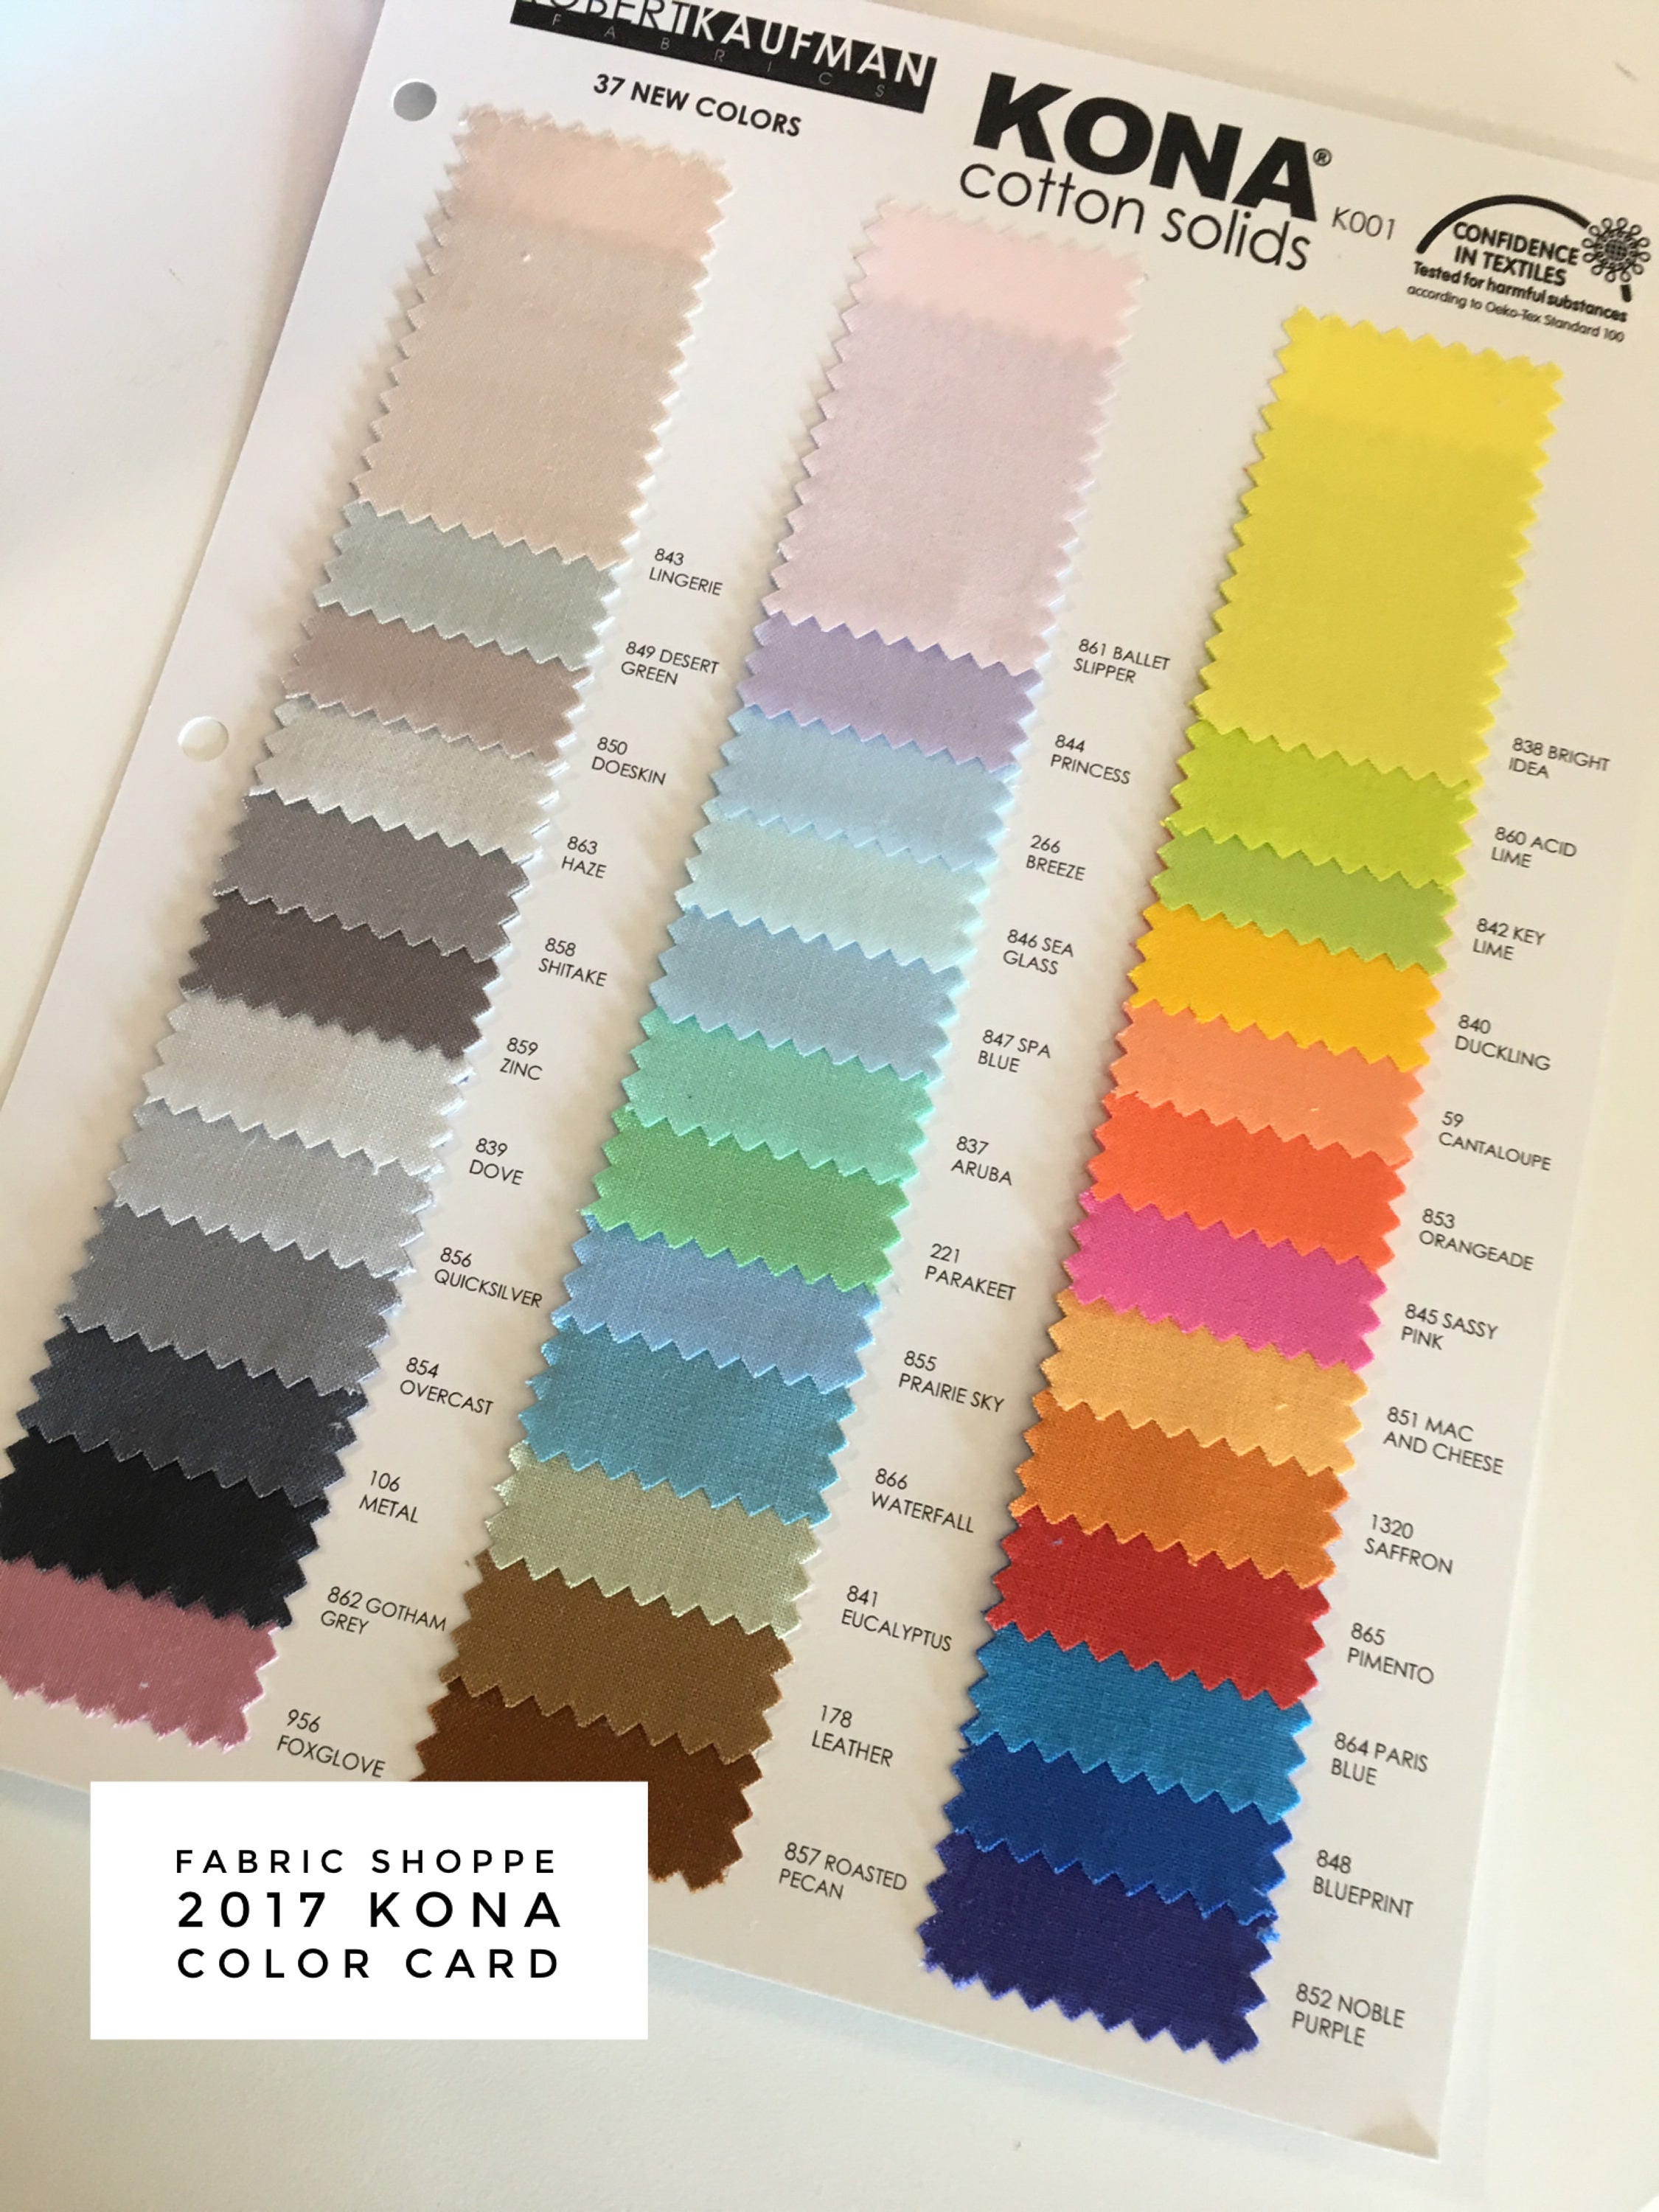 New 2017 kona color card supplement kona swatches the 2017 new 37 new 2017 kona color card supplement kona swatches the 2017 new 37 colors quilting cottons cotton solid fabric chart robert kaufman nvjuhfo Images